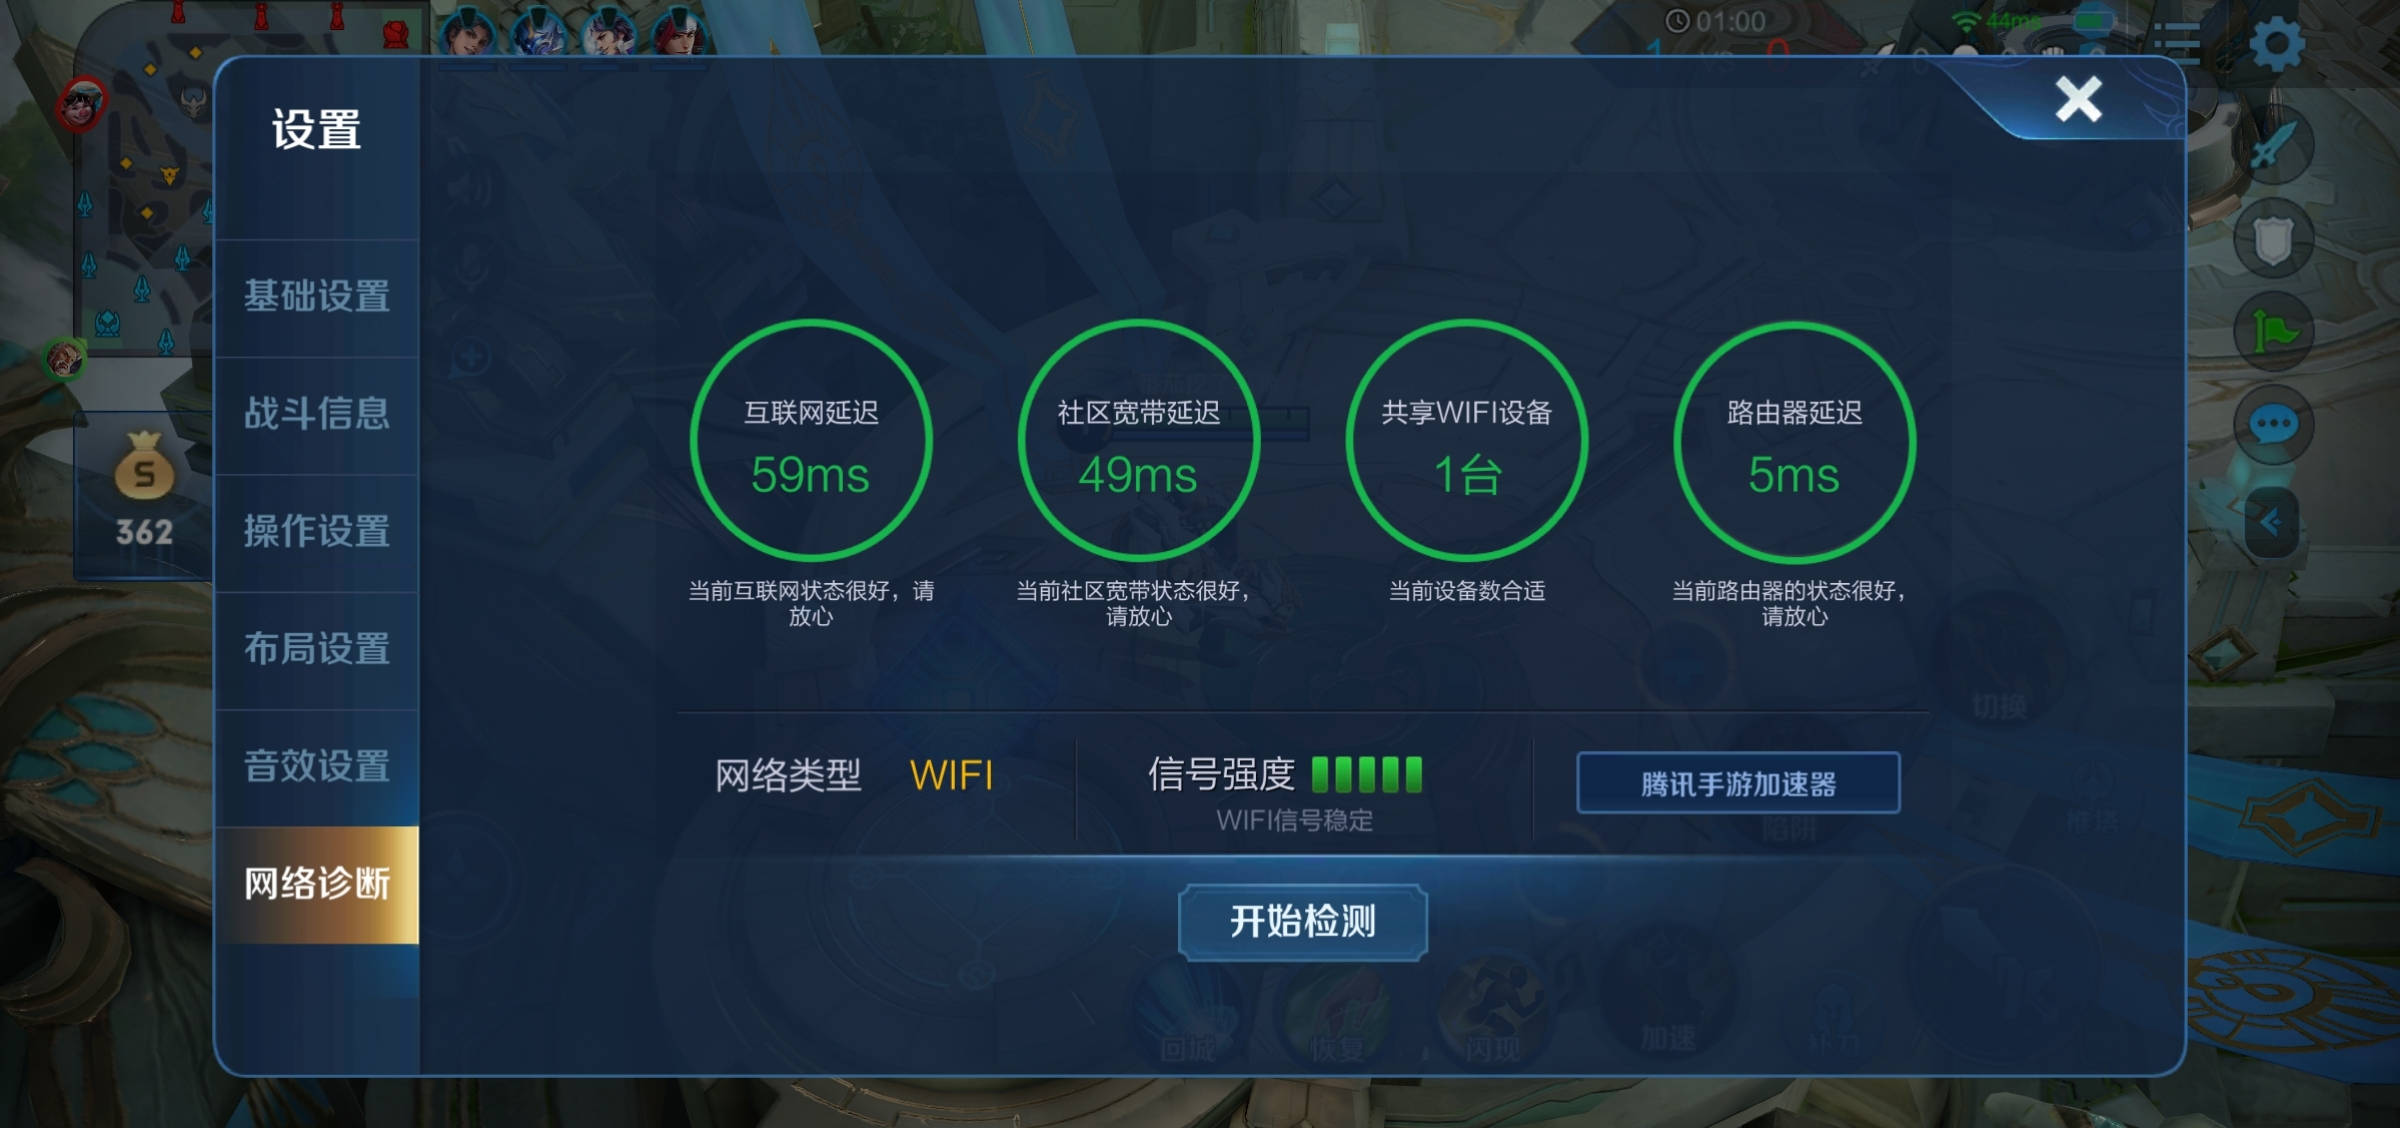 Screenshot_20200516_011905_com.tencent.tmgp.sgame.jpg